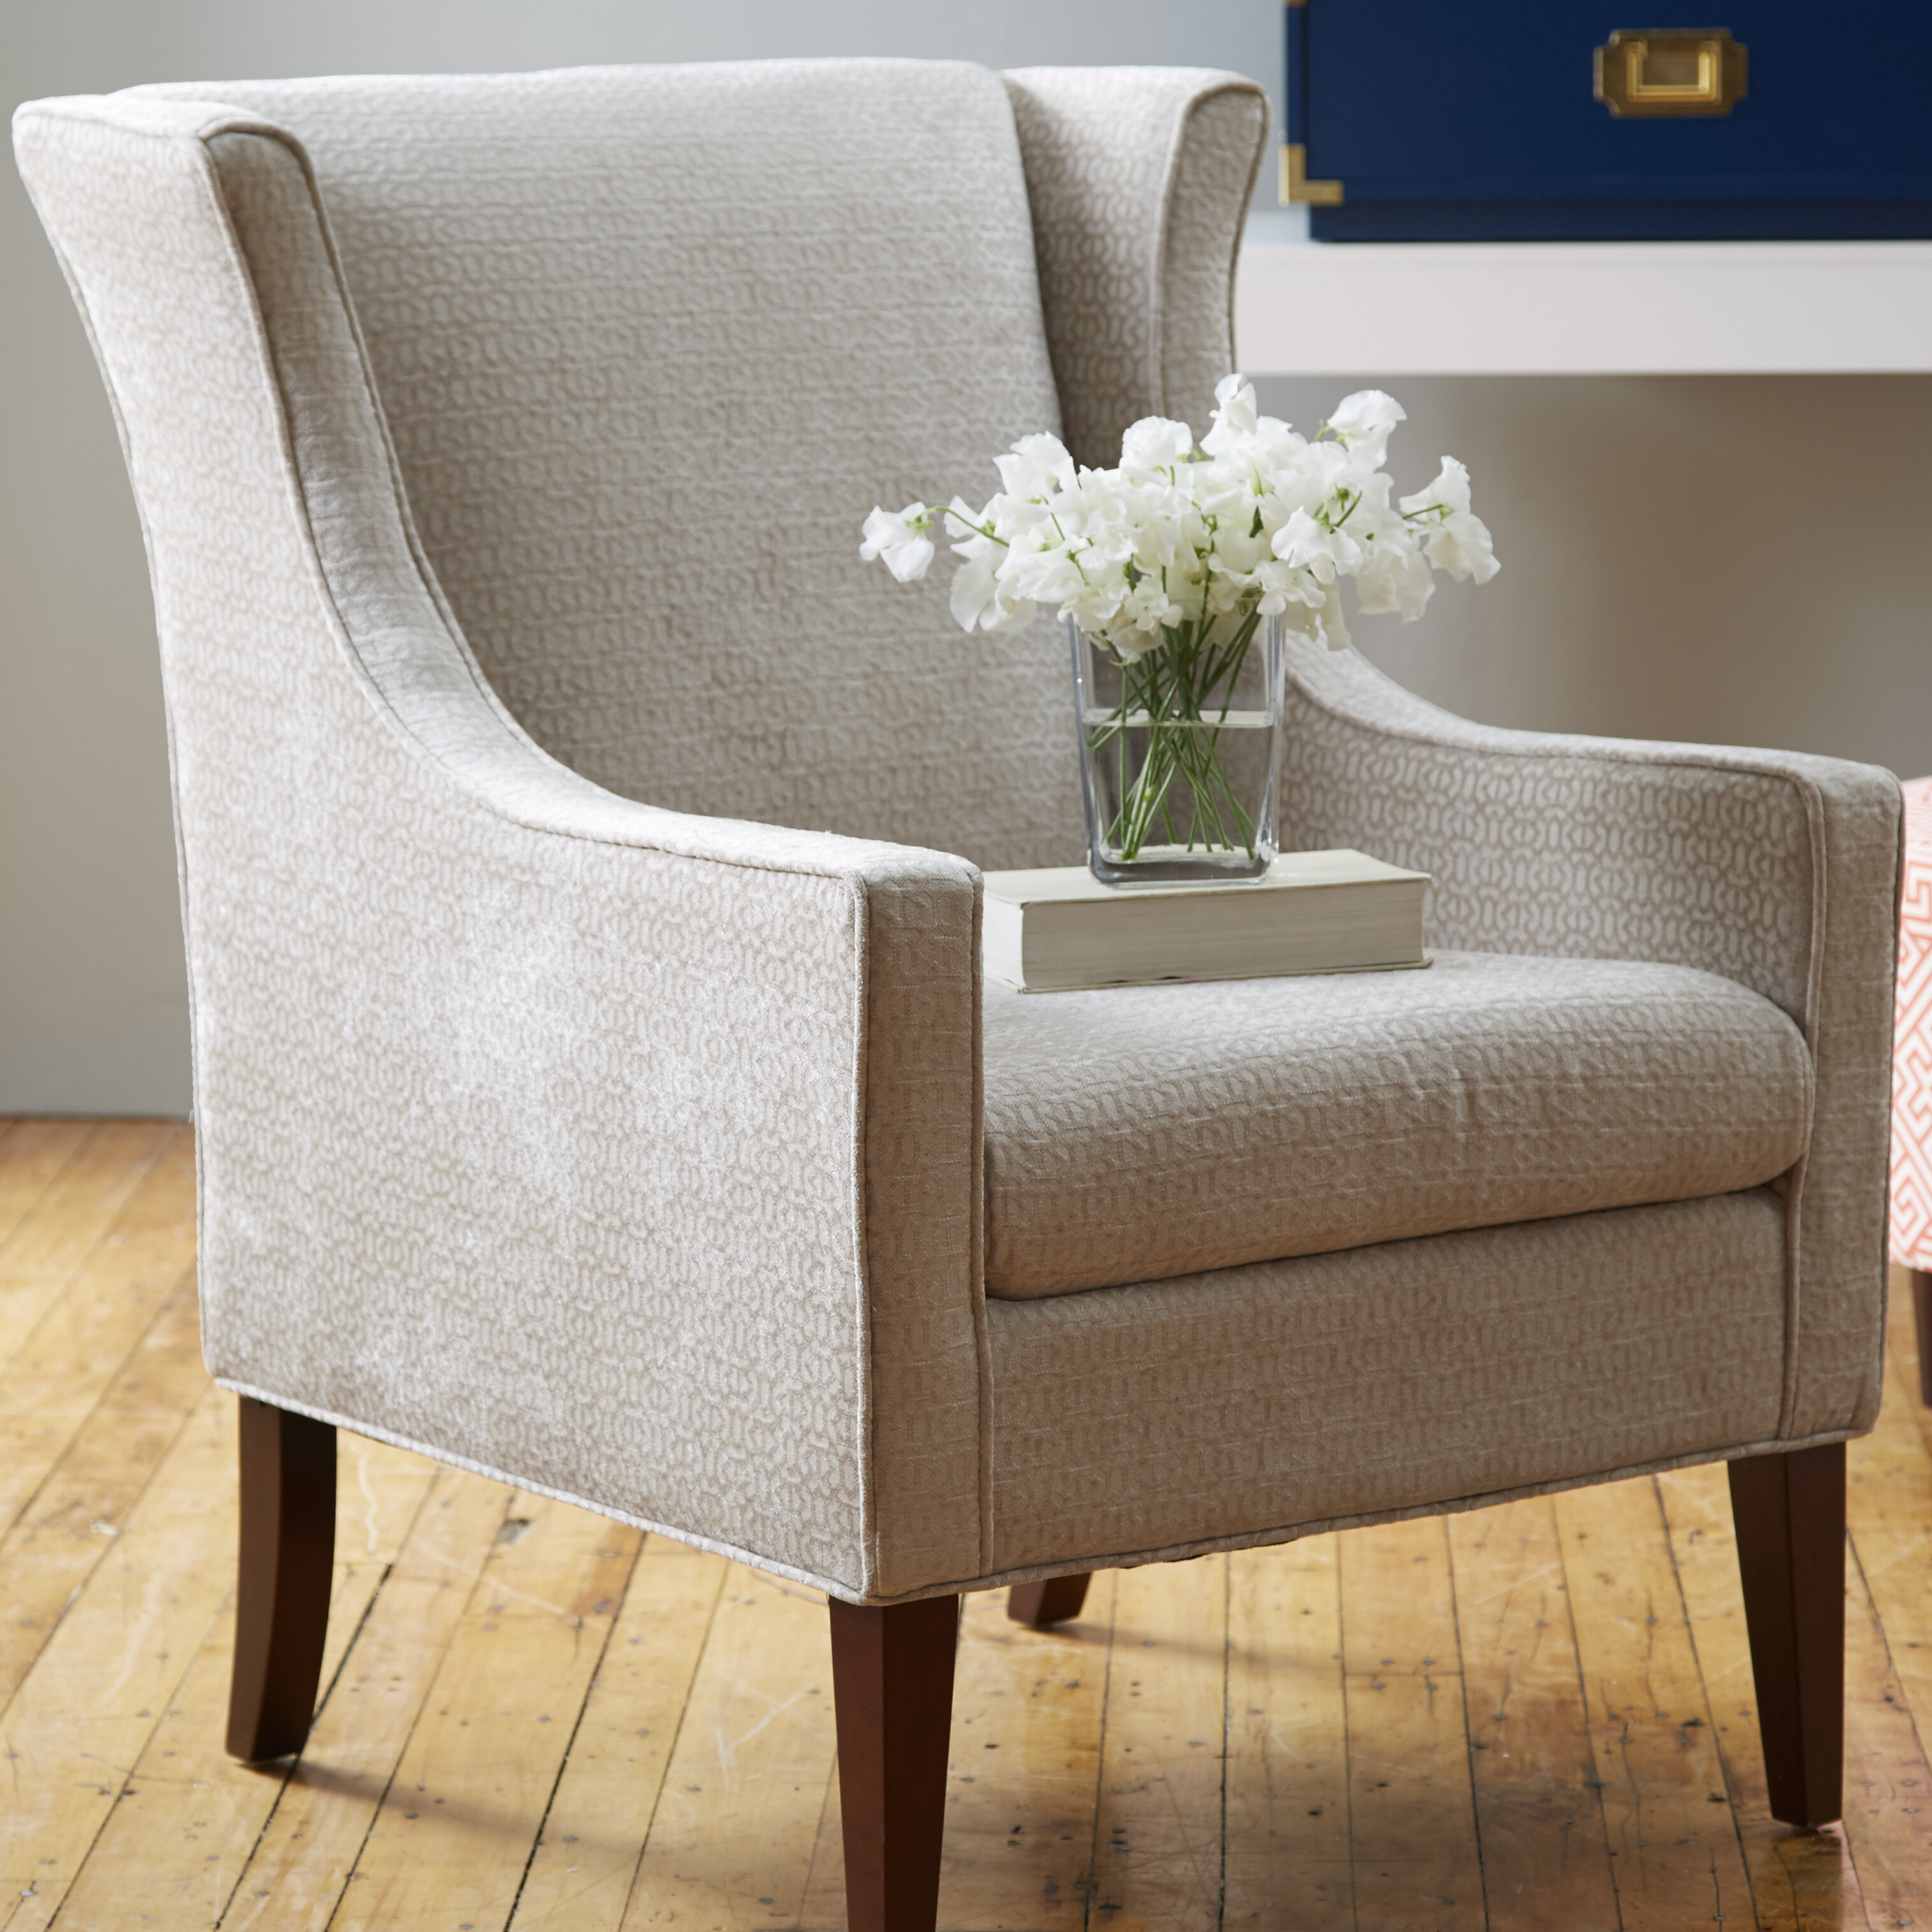 Peachy Matherville Wingback Chair Pdpeps Interior Chair Design Pdpepsorg